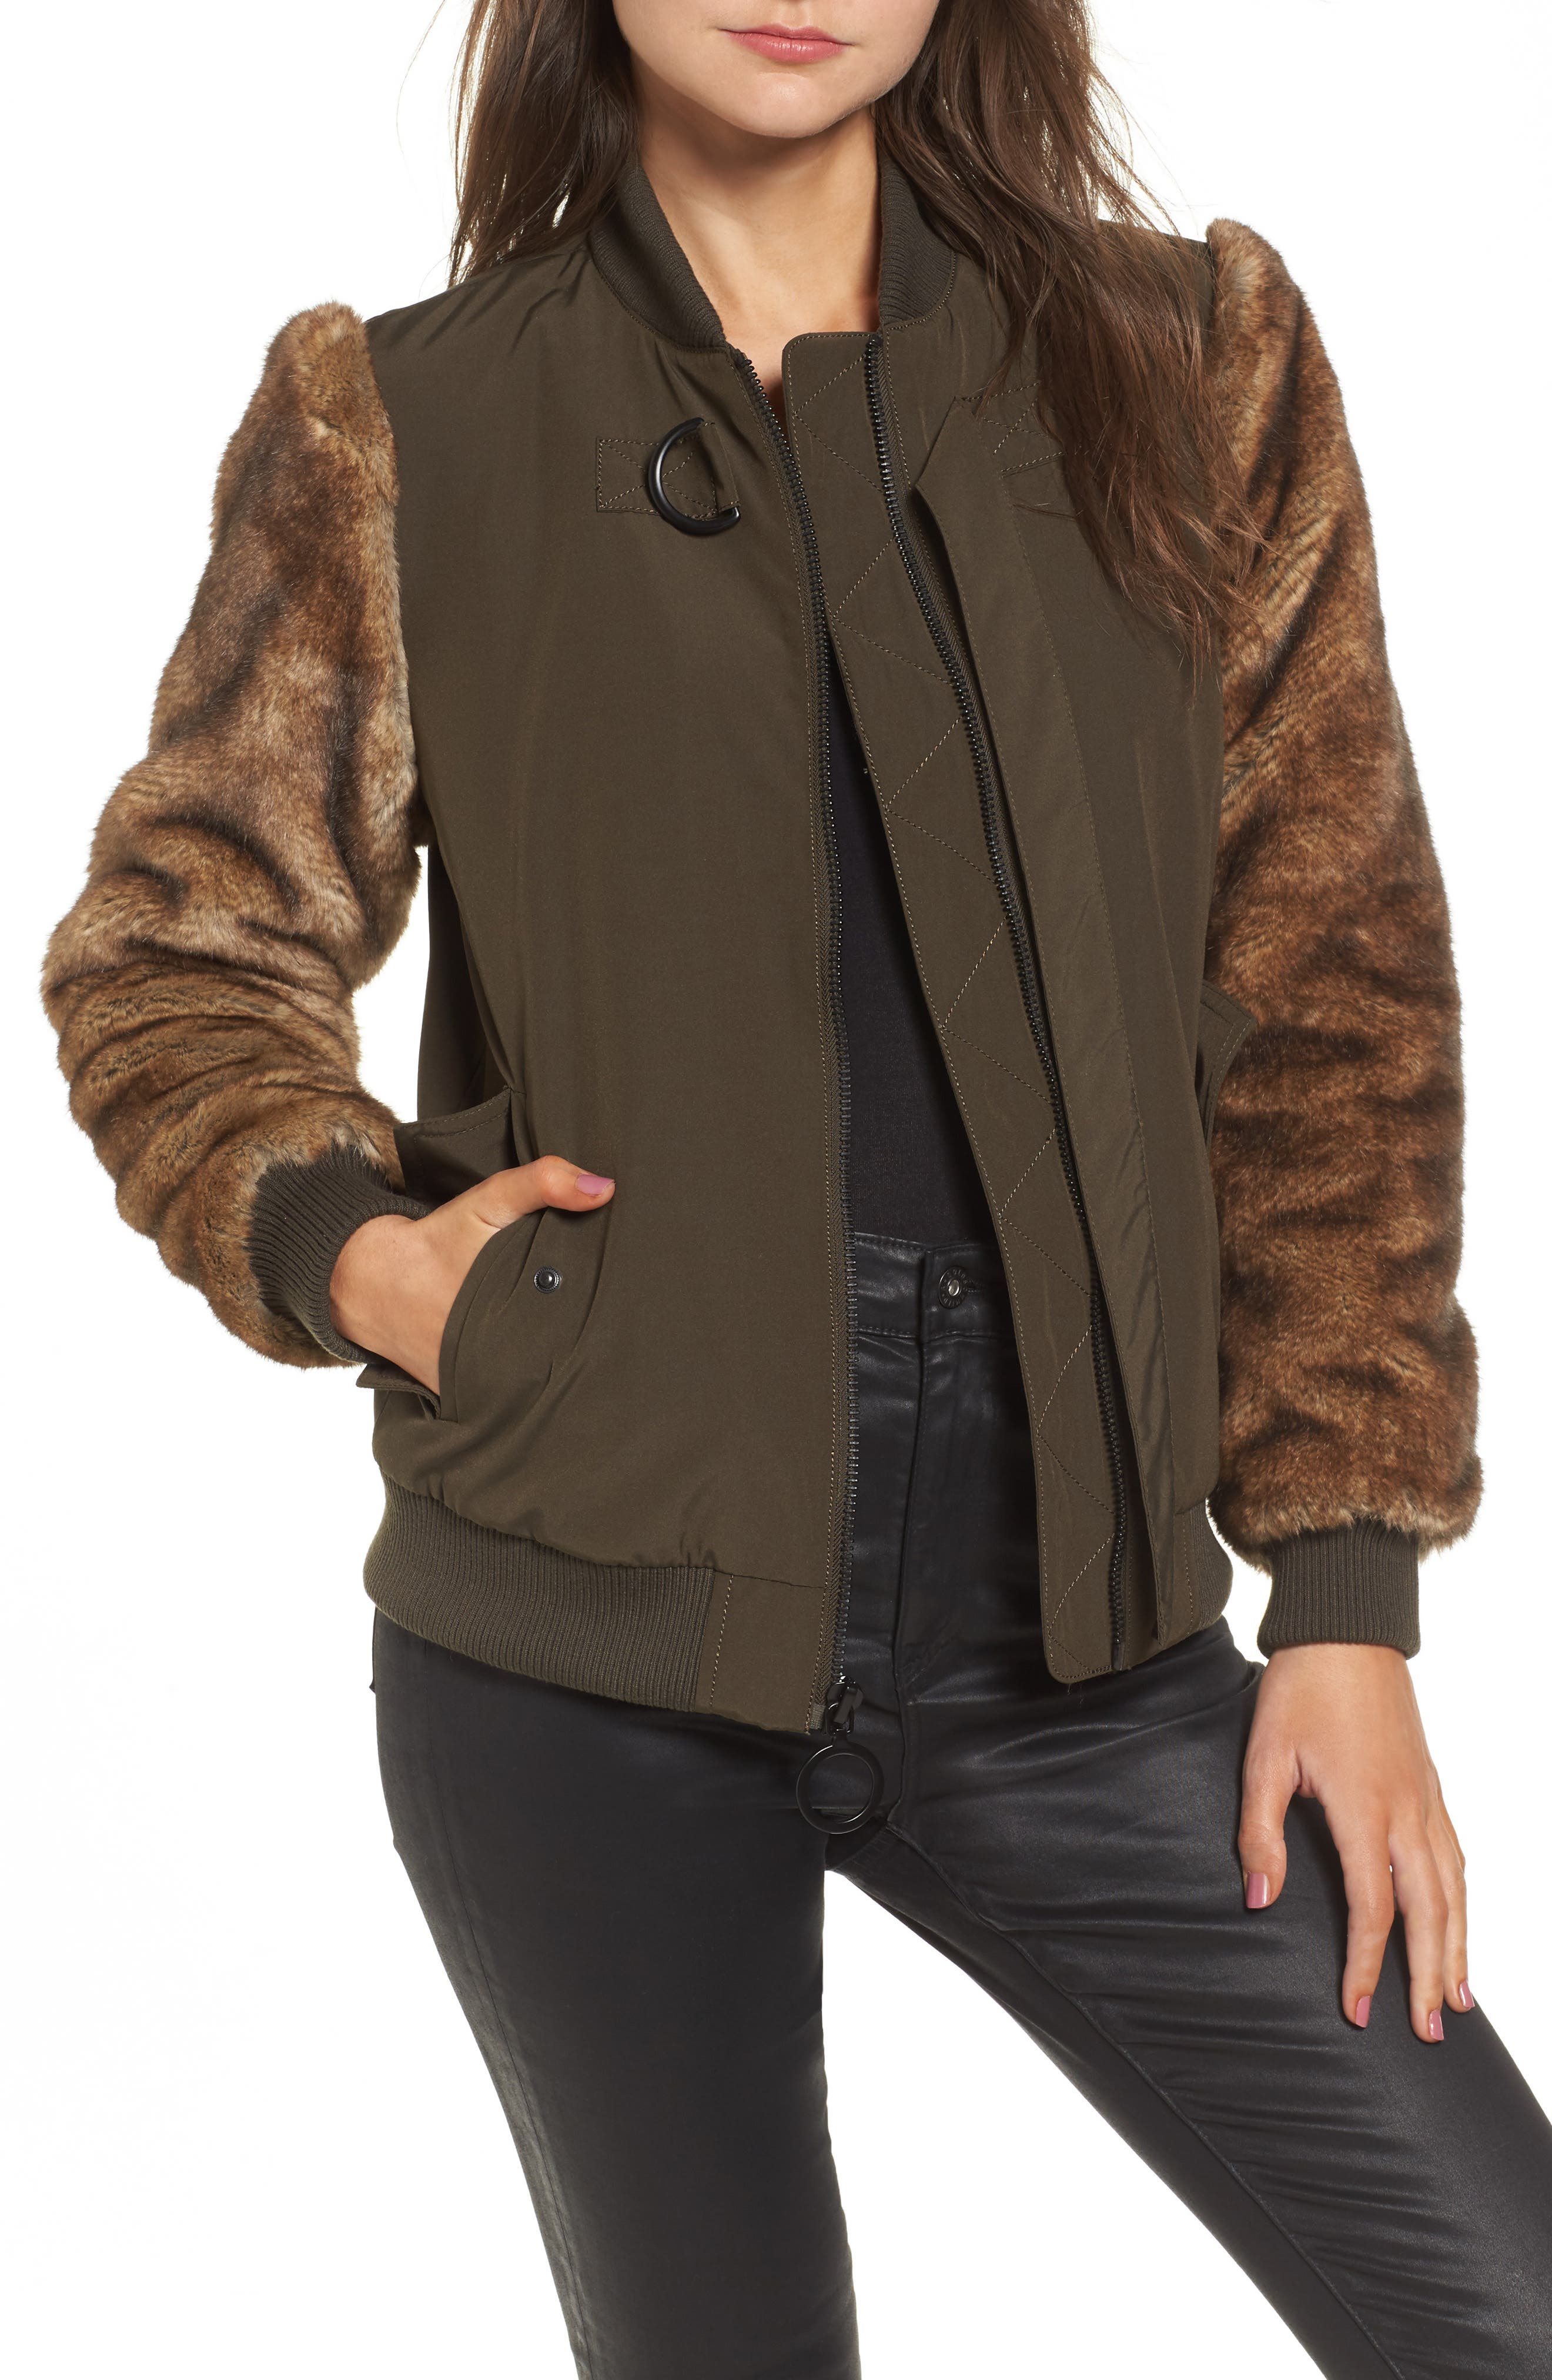 Faux Fur Sleeve Bomber Jacket,                         Main,                         color, Army Green